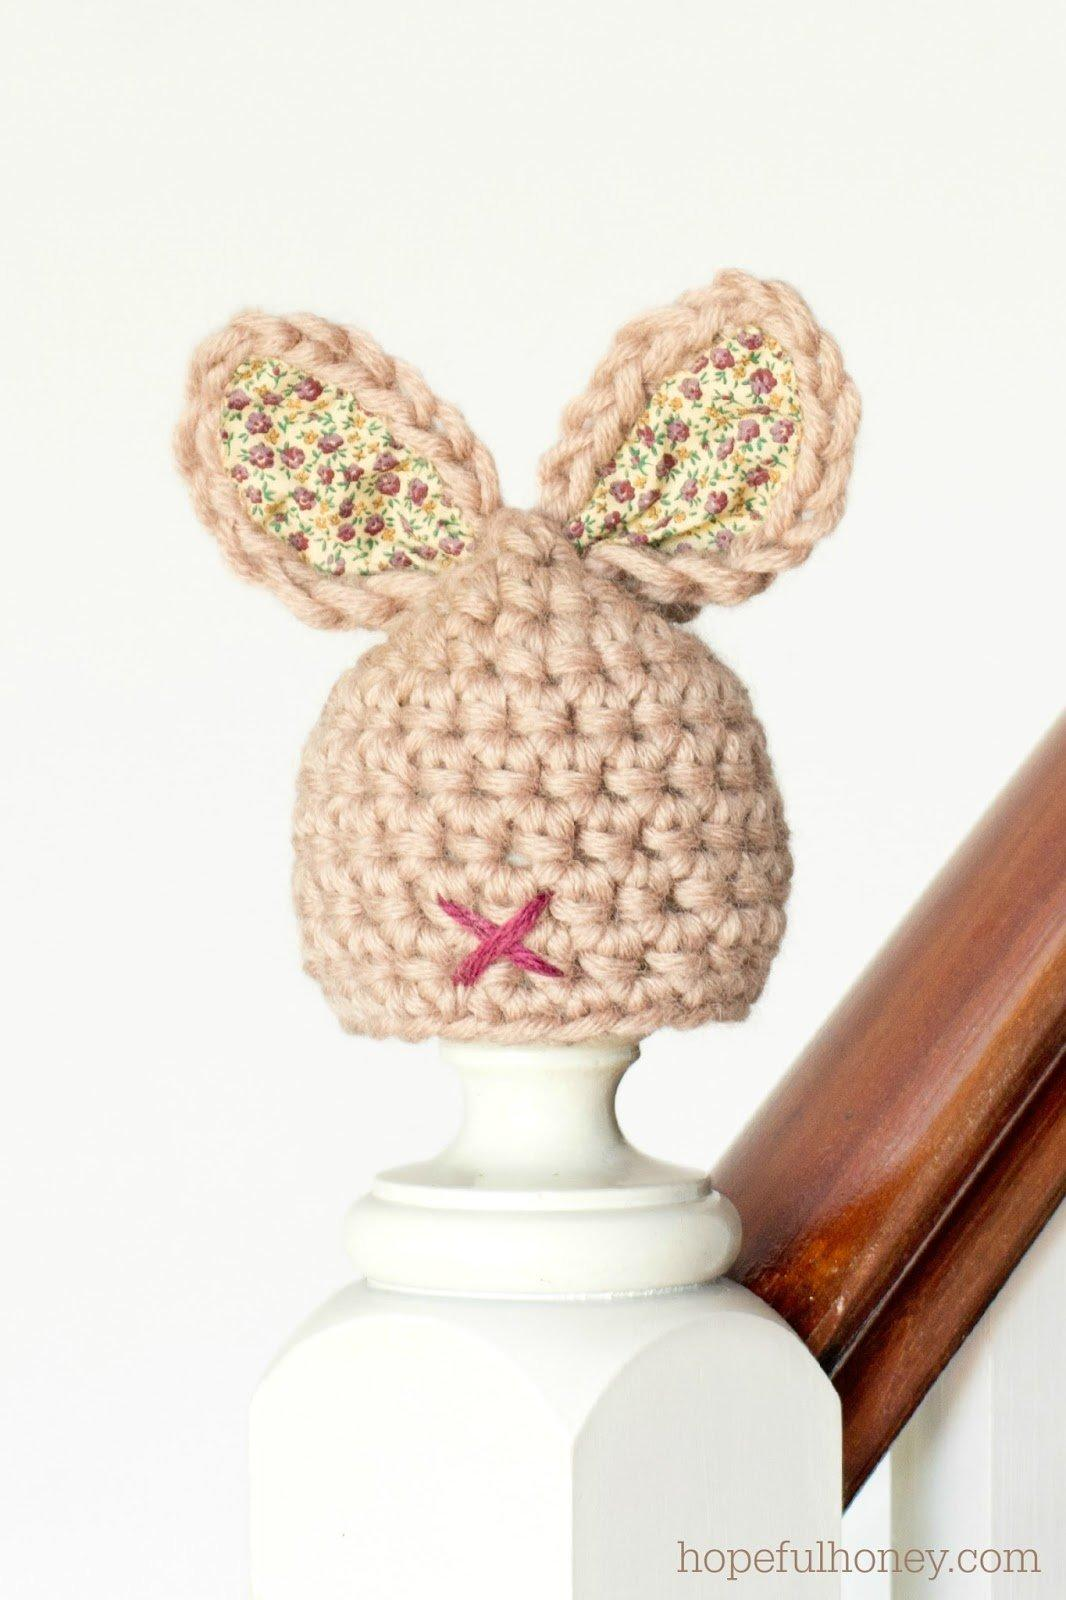 Crochet Pattern For Newborn Bunny Hat : 21 Free Crochet And Knitting Patterns For Your Babys ...